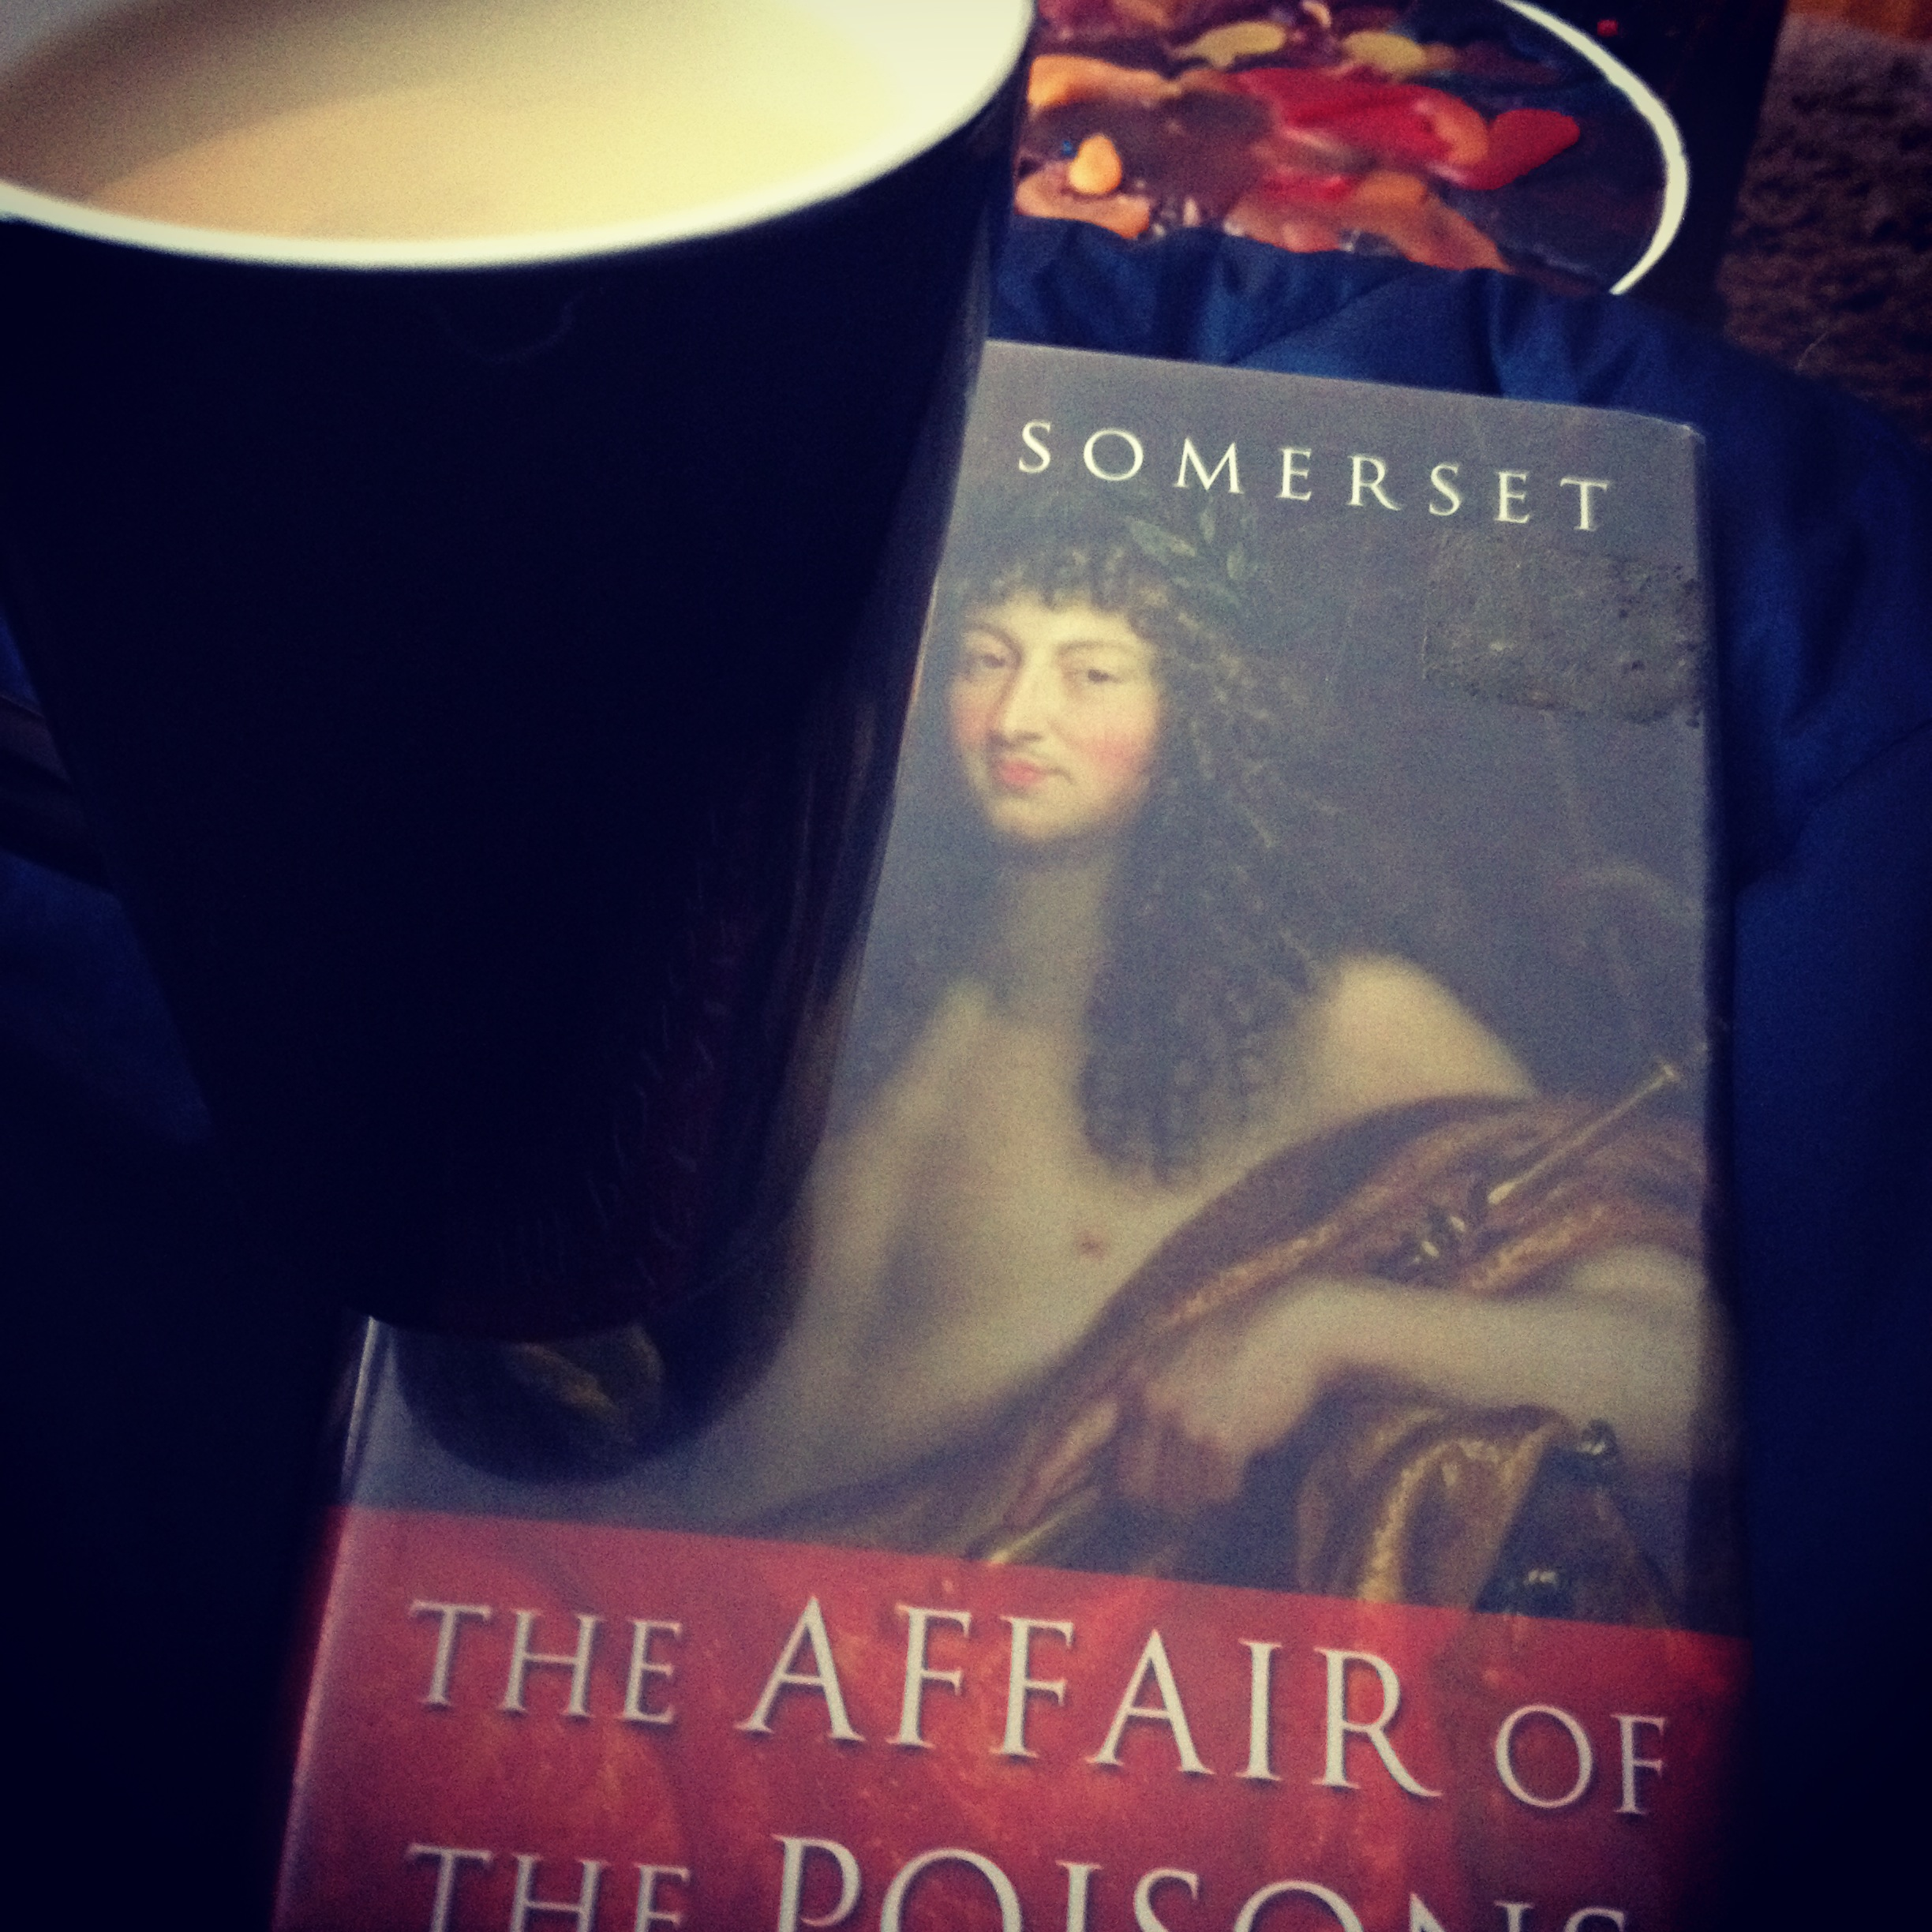 Cozied up with a tea, blanket, and interesting history. Is there anything better in winter?